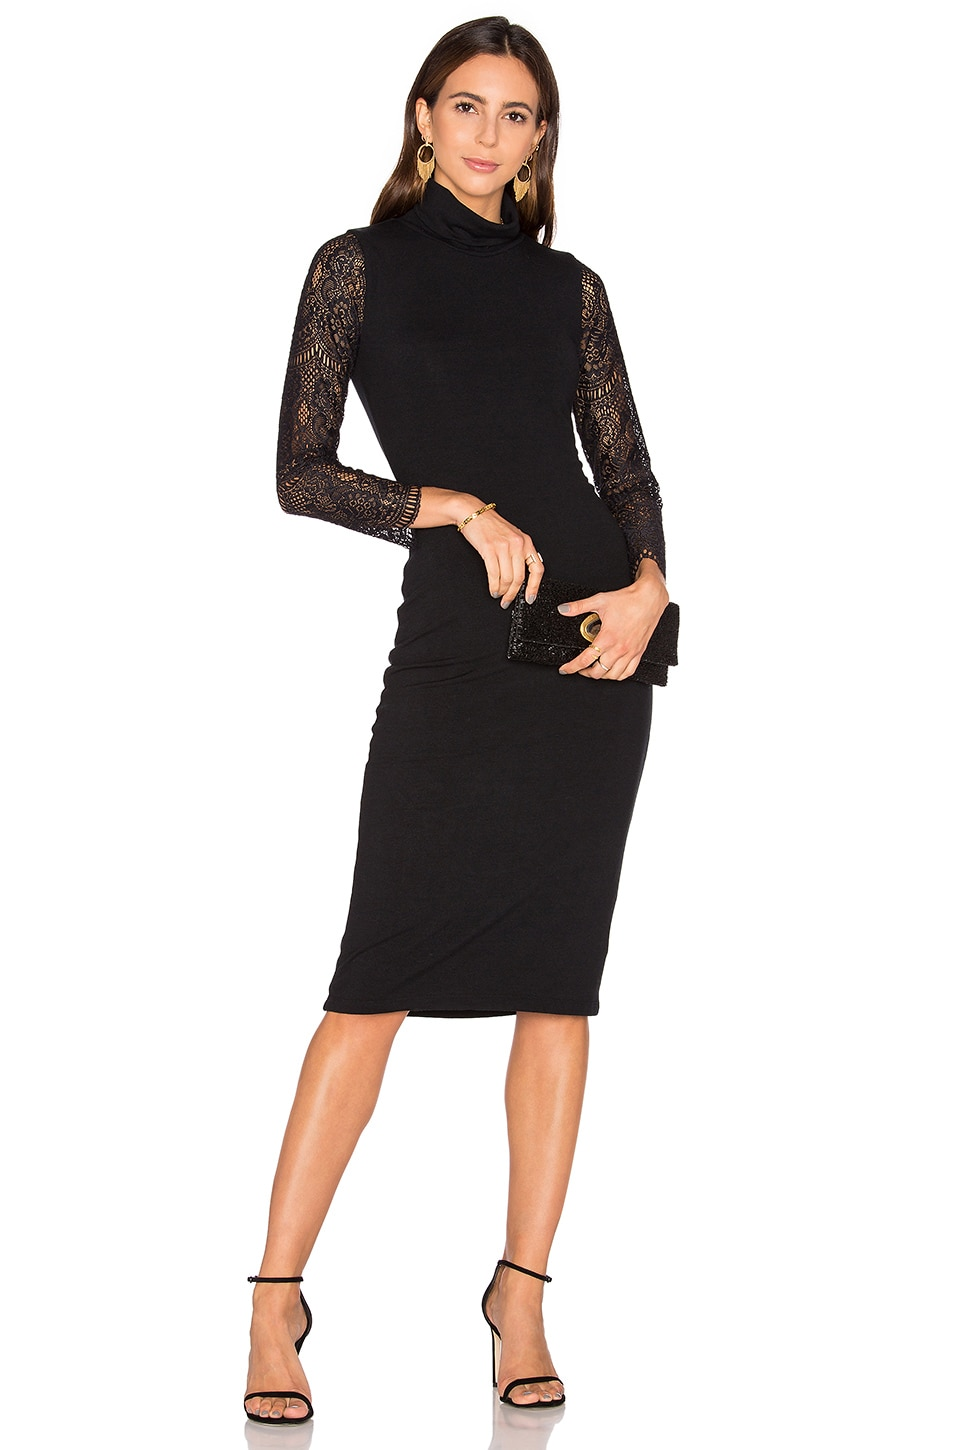 Kala Lace Midi Dress by Alice + Olivia